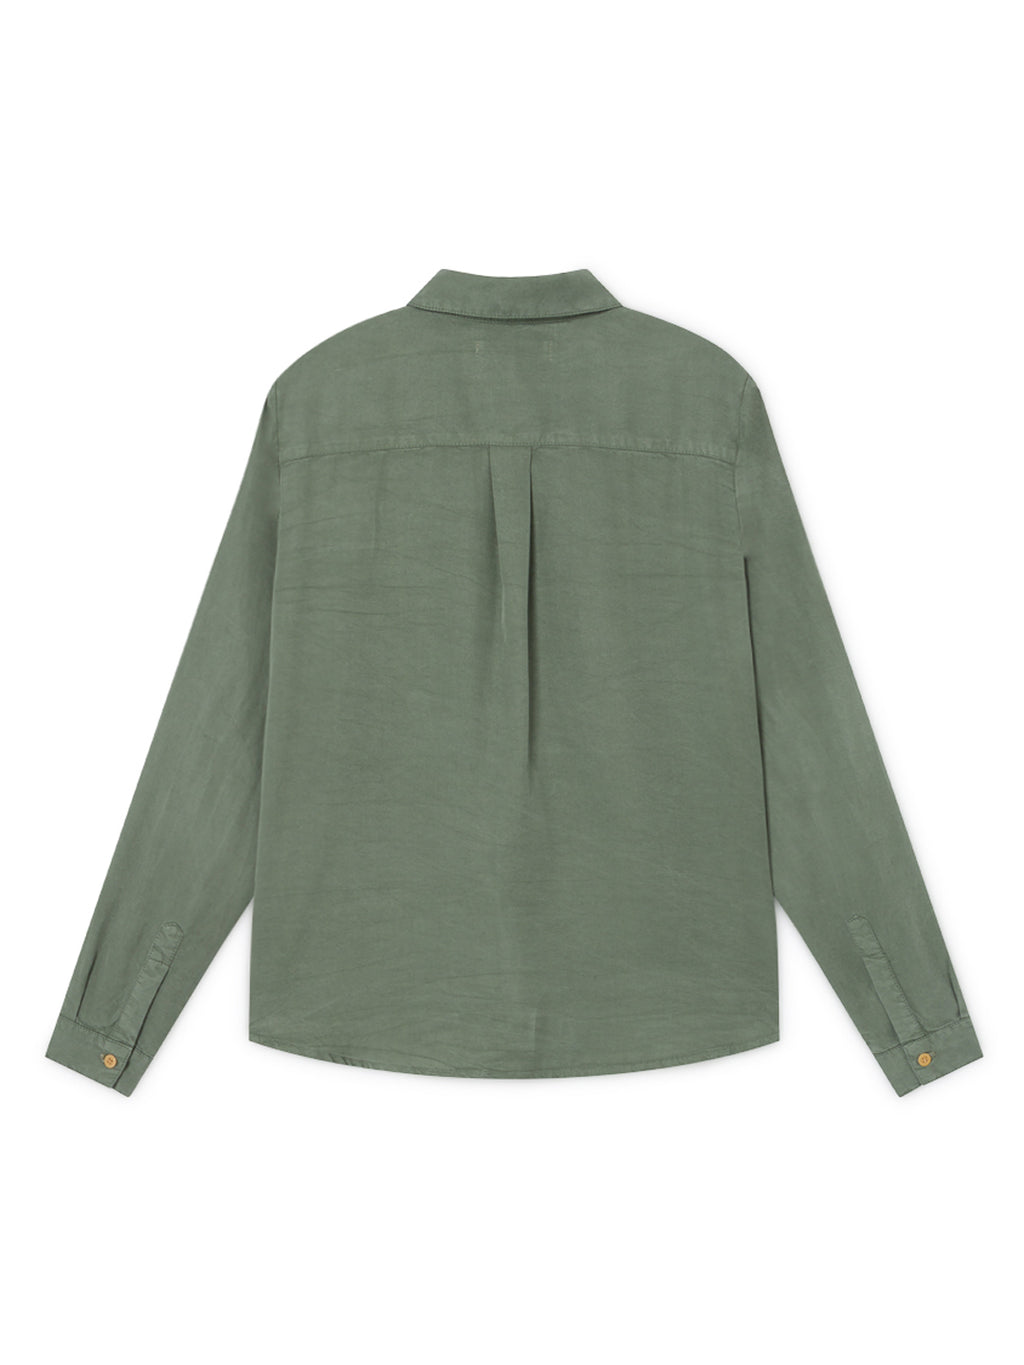 TWOTHIRDS Womens Shirt: Romvi - Washed Green back